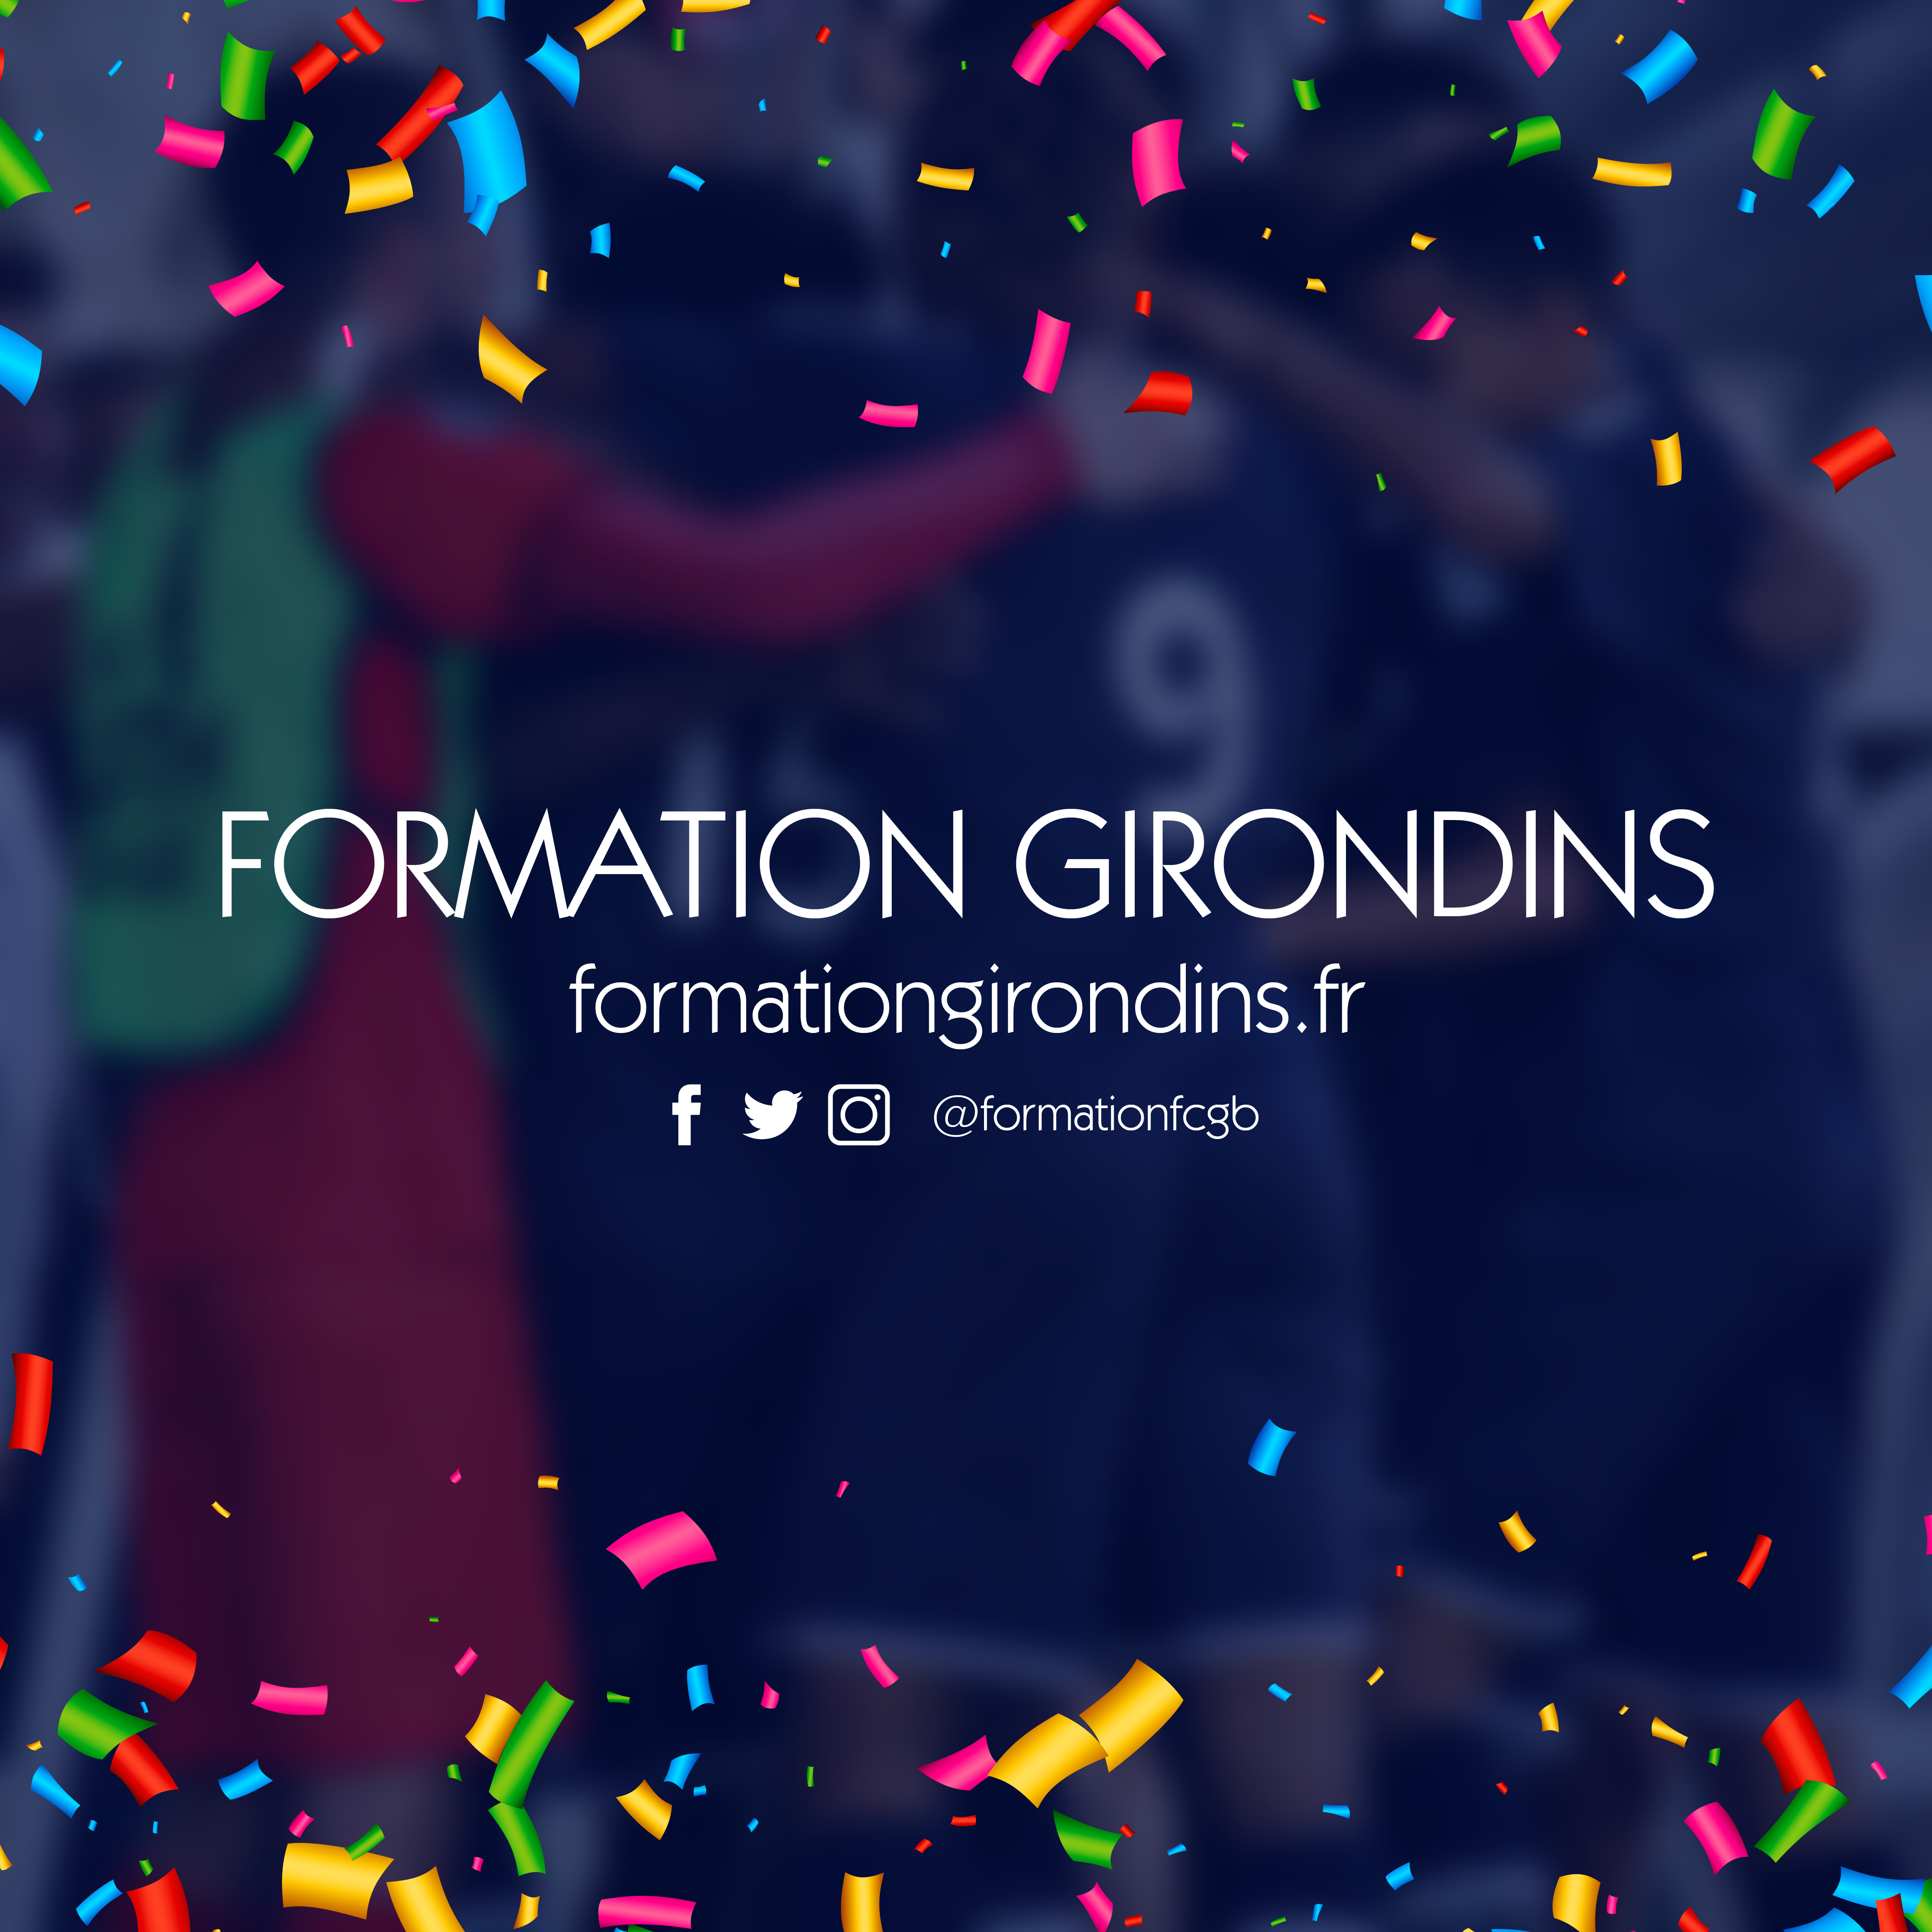 Cfa Girondins : Formation Girondins a 7 ans ! - Formation Girondins